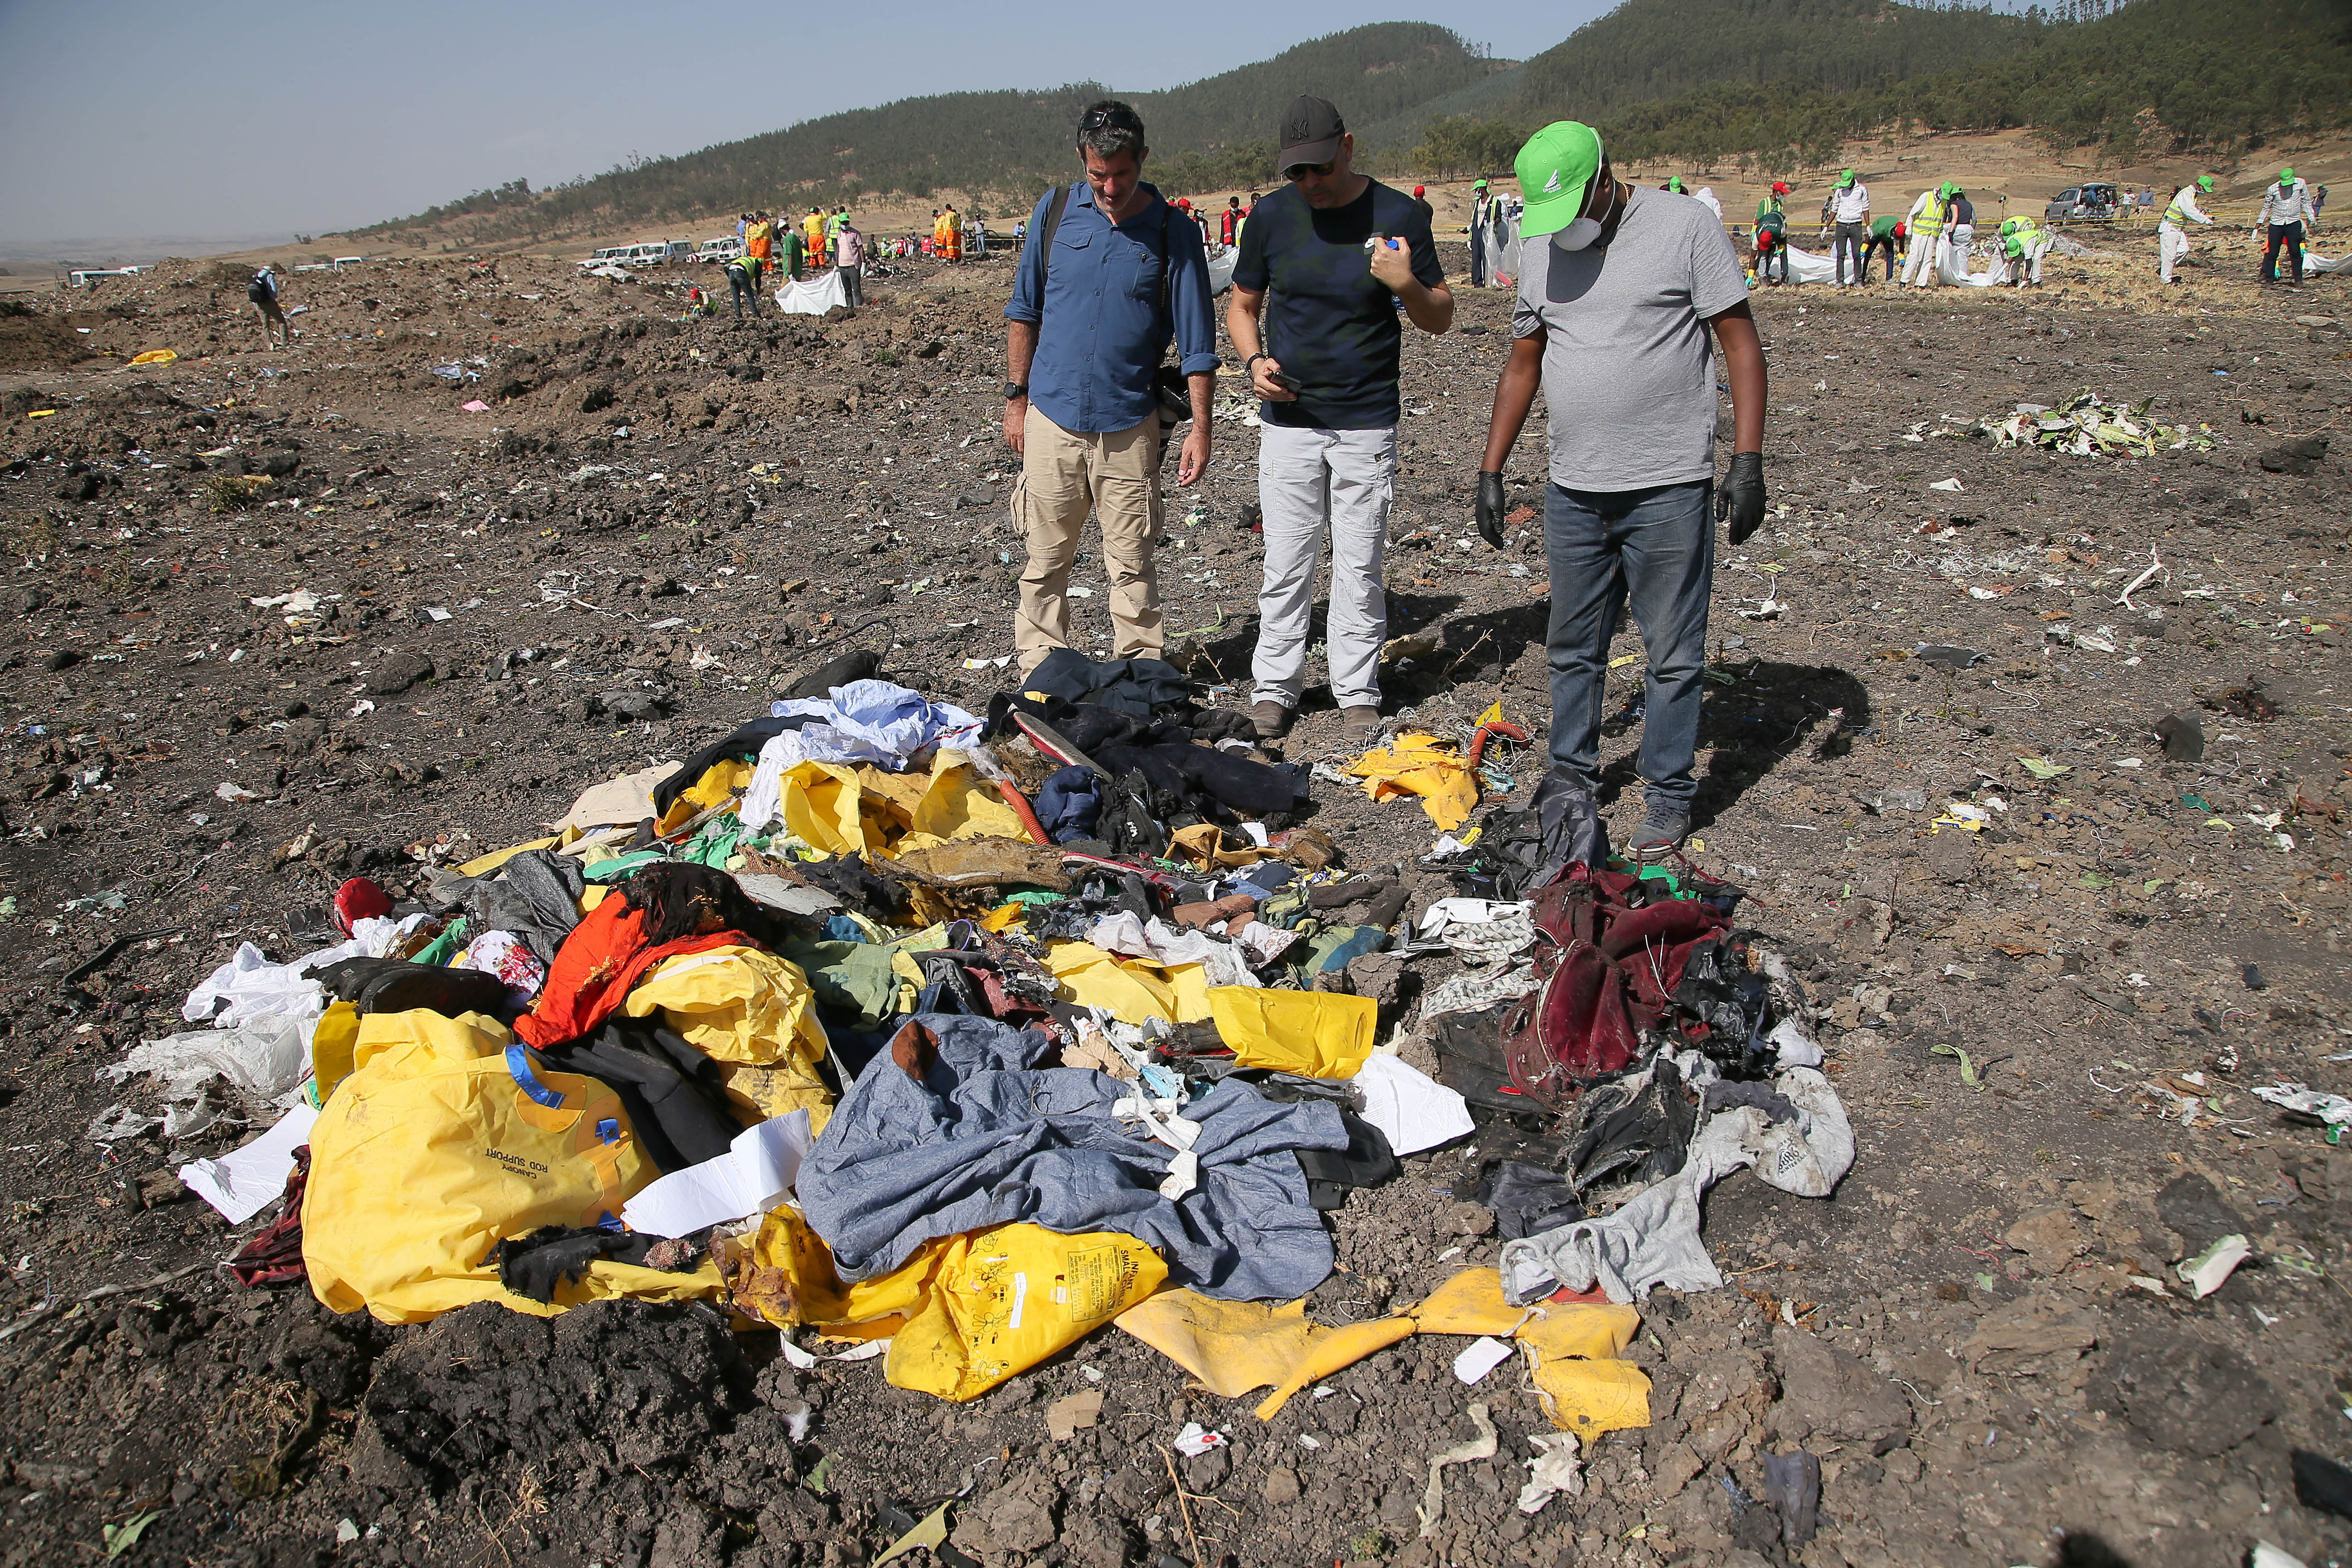 A man searching for personal effects belonging to his brother (center) who was a passenger on ET 302 speaks to a journalist and Recovery worker at the crash site of Ethiopian Airlines Flight ET 302 on March 12, 2019, in Bishoftu, Ethiopia. (Getty)